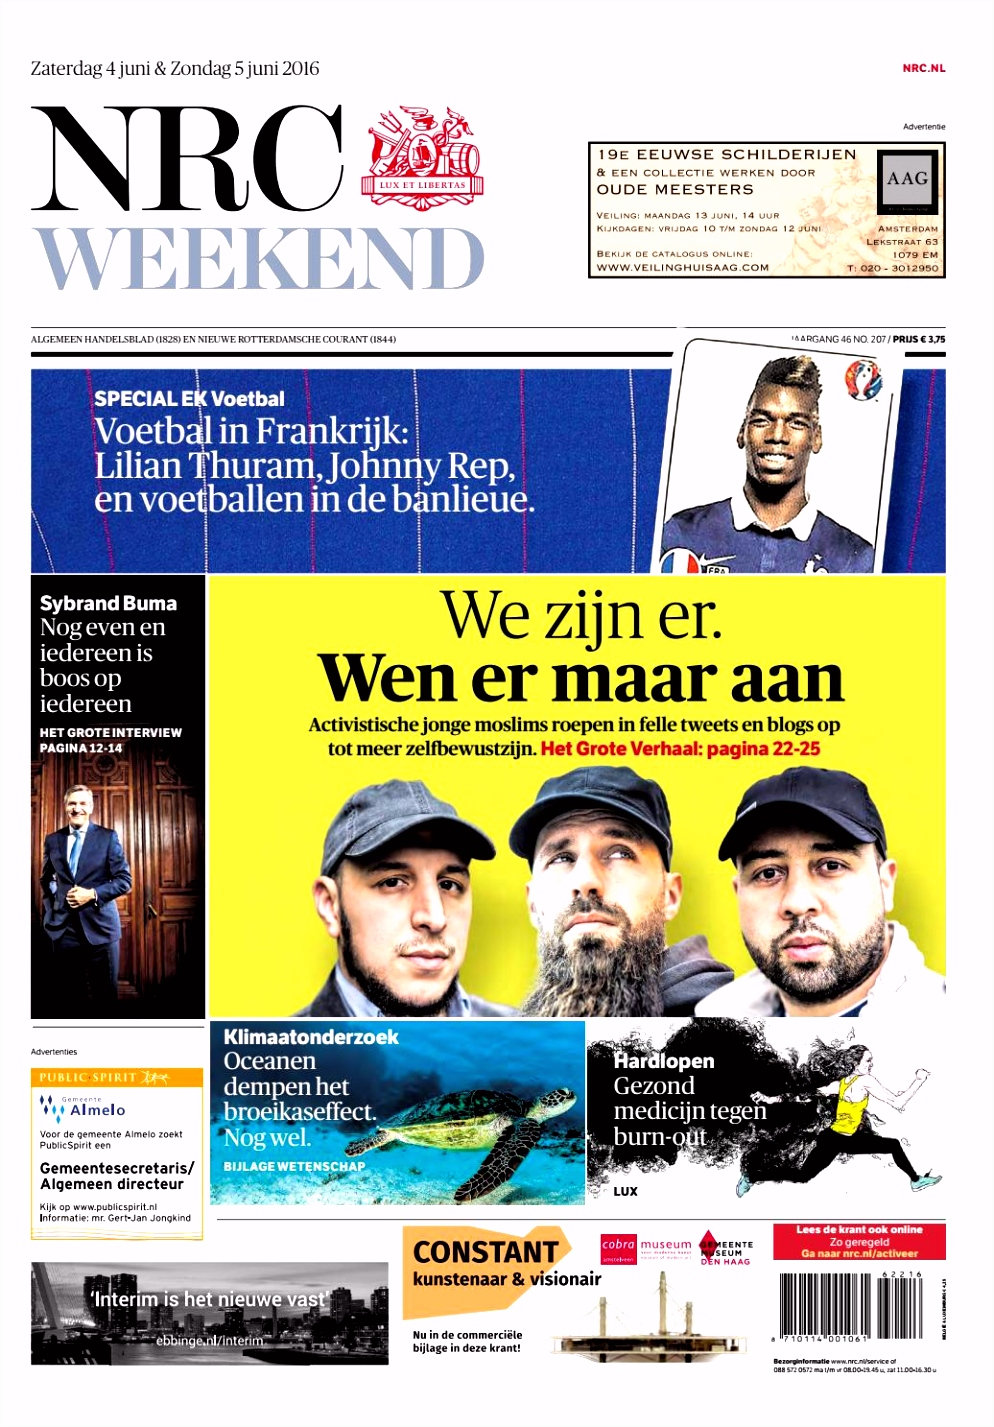 NRC weekend 4 & 5 juni 2016 by NRC Media issuu